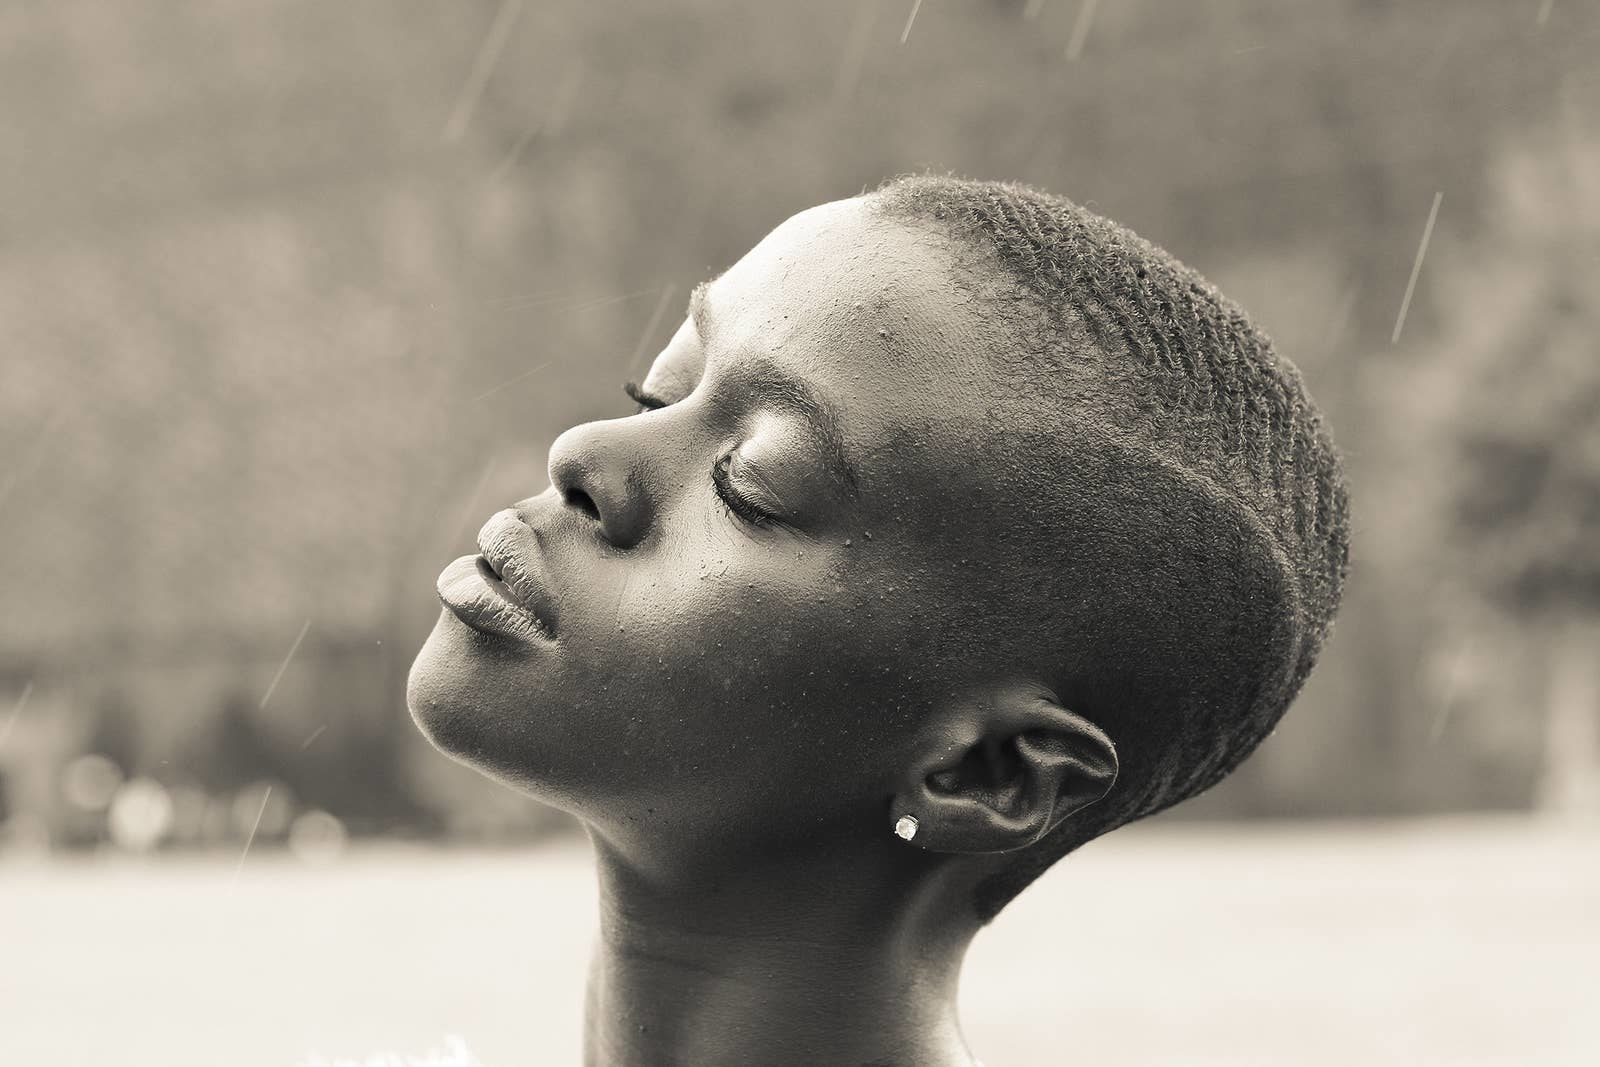 A woman with short hair stands in the rain with her head tilted back